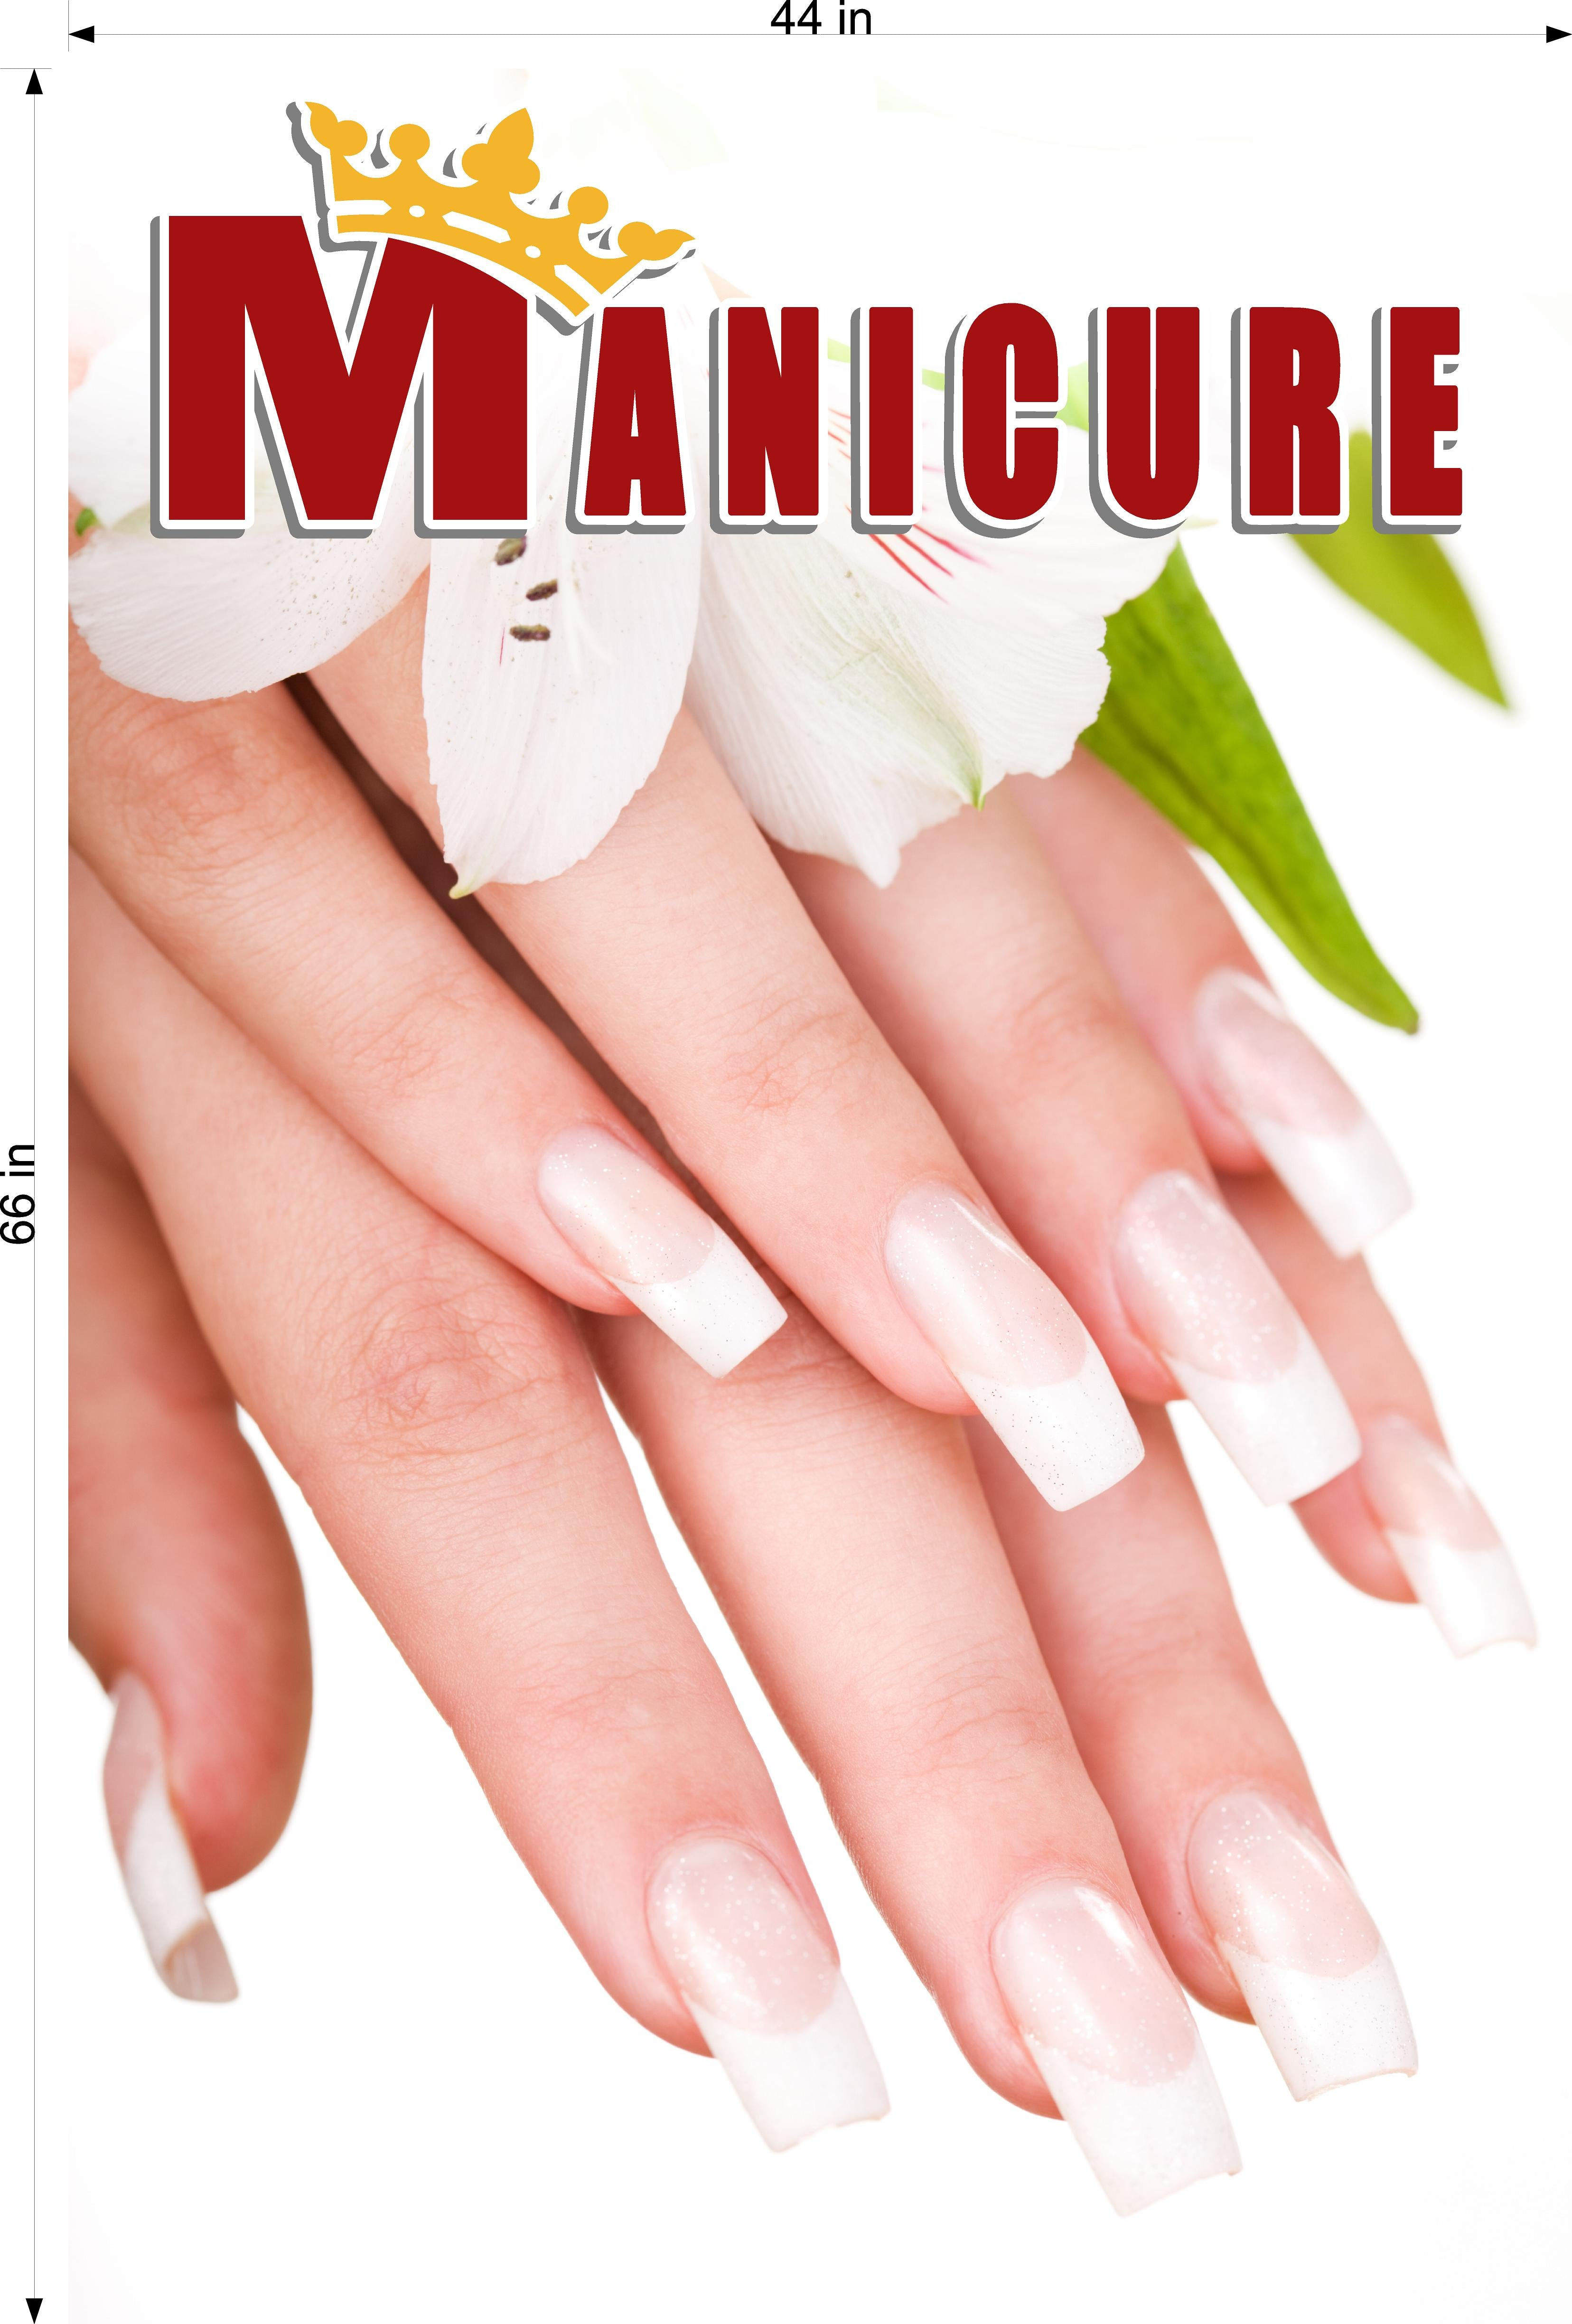 Manicure 19 Photo-Realistic Paper Poster Premium Matte Interior Inside Sign Advertising Marketing Wall Window Non-Laminated Vertical